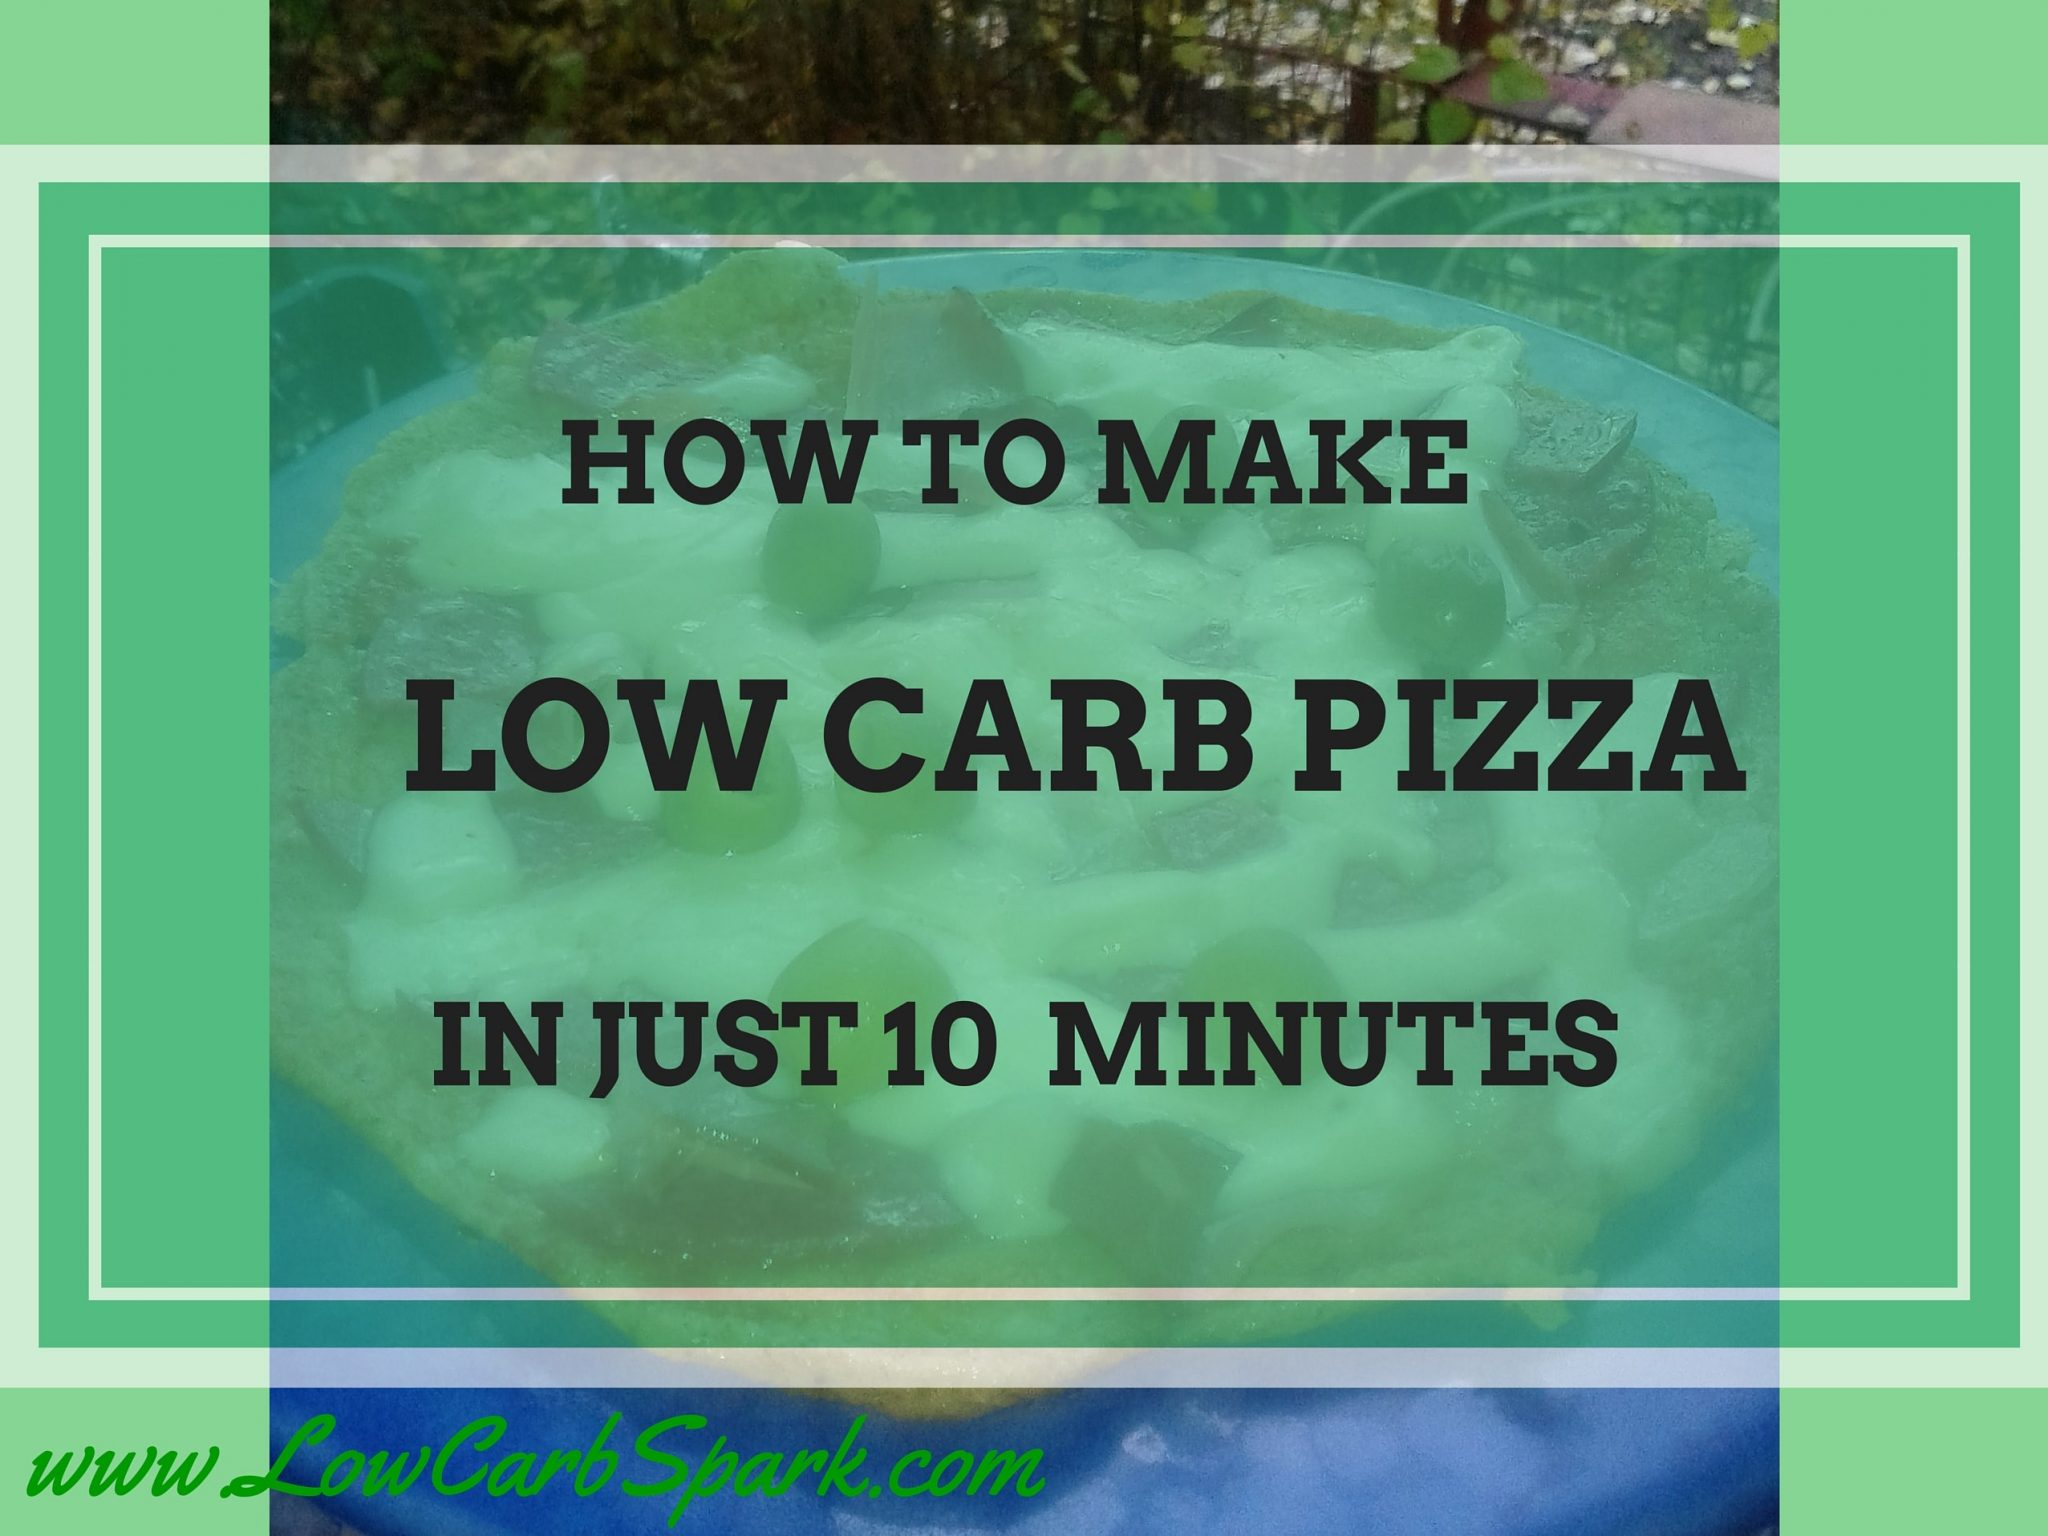 How to make low carb skillet pizza in just 10 minutes?